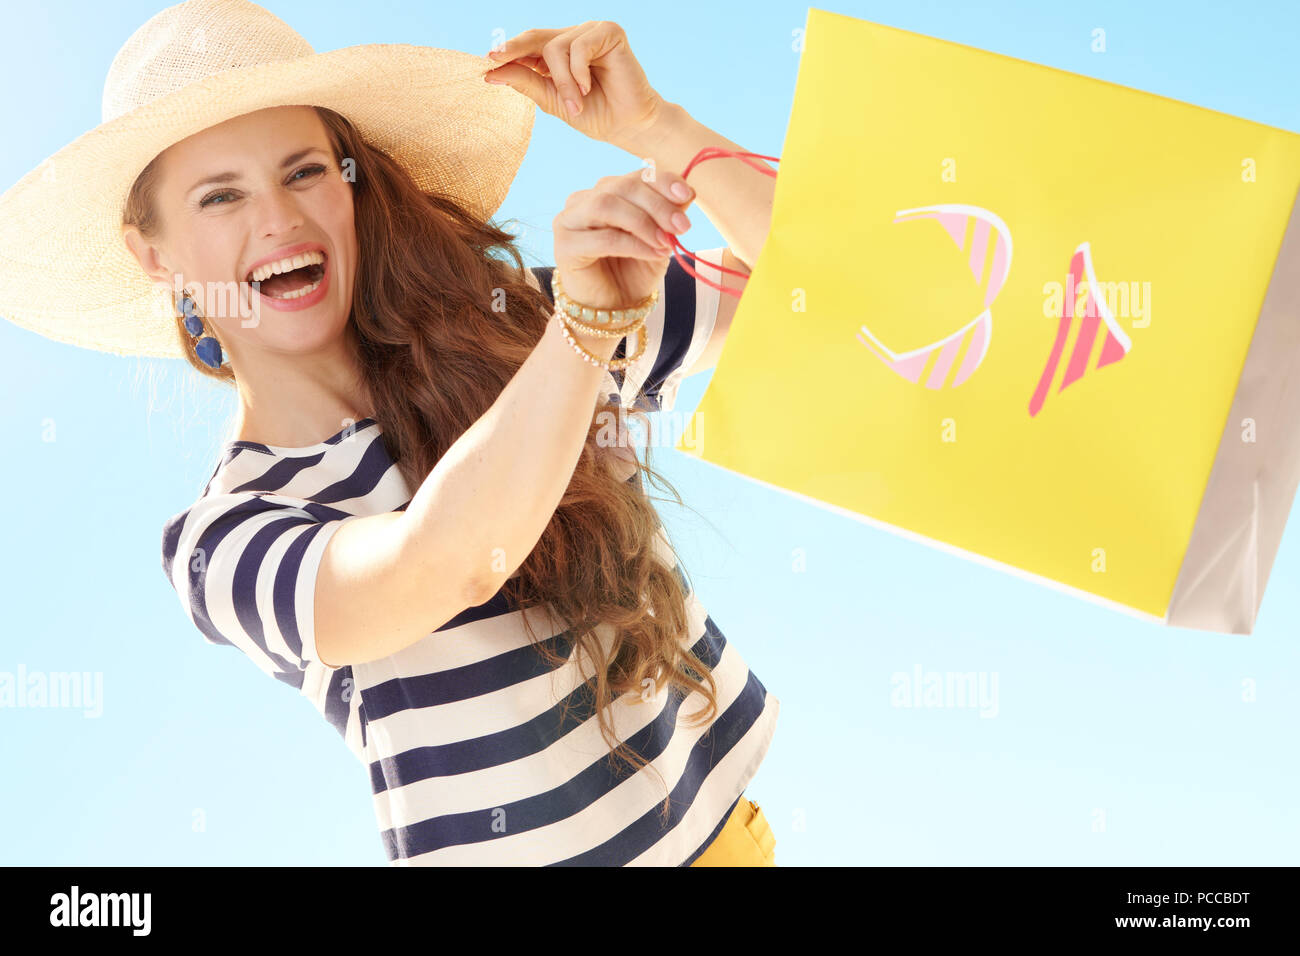 cheerful trendy woman in straw hat against blue sky with yellow shopping bag with bikini - Stock Image